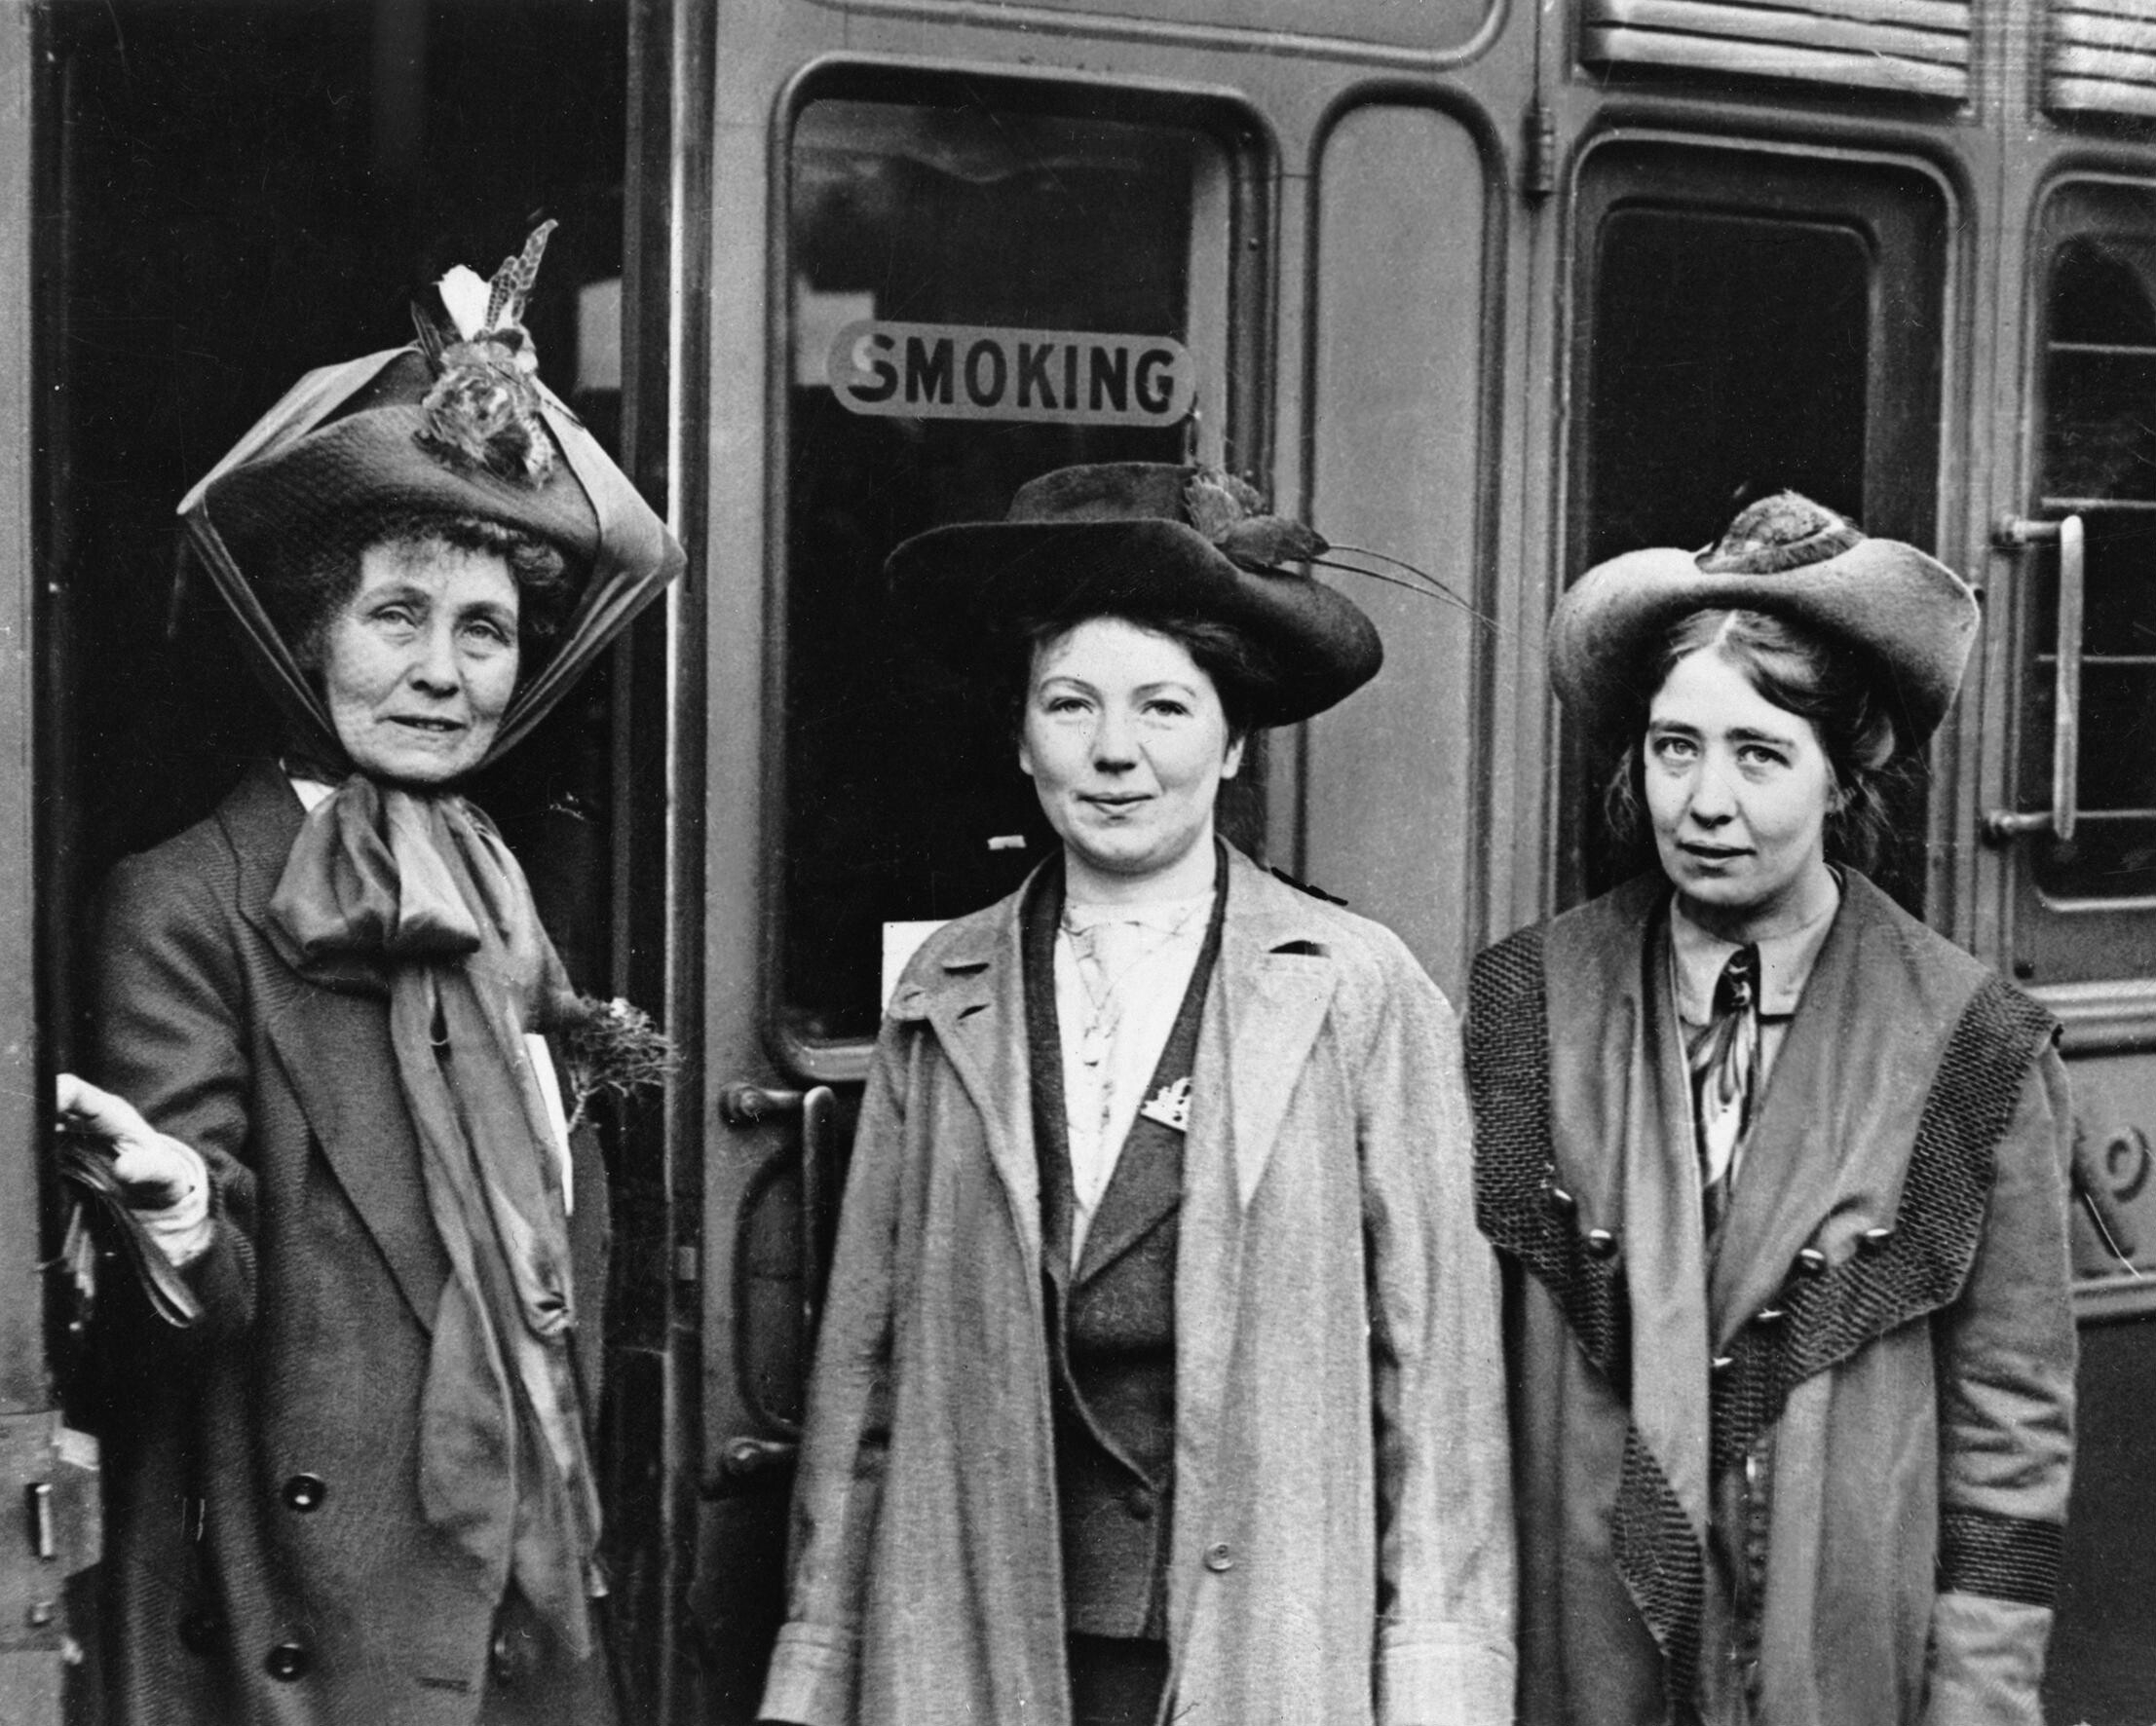 Marking 100 years since (some) women won the vote